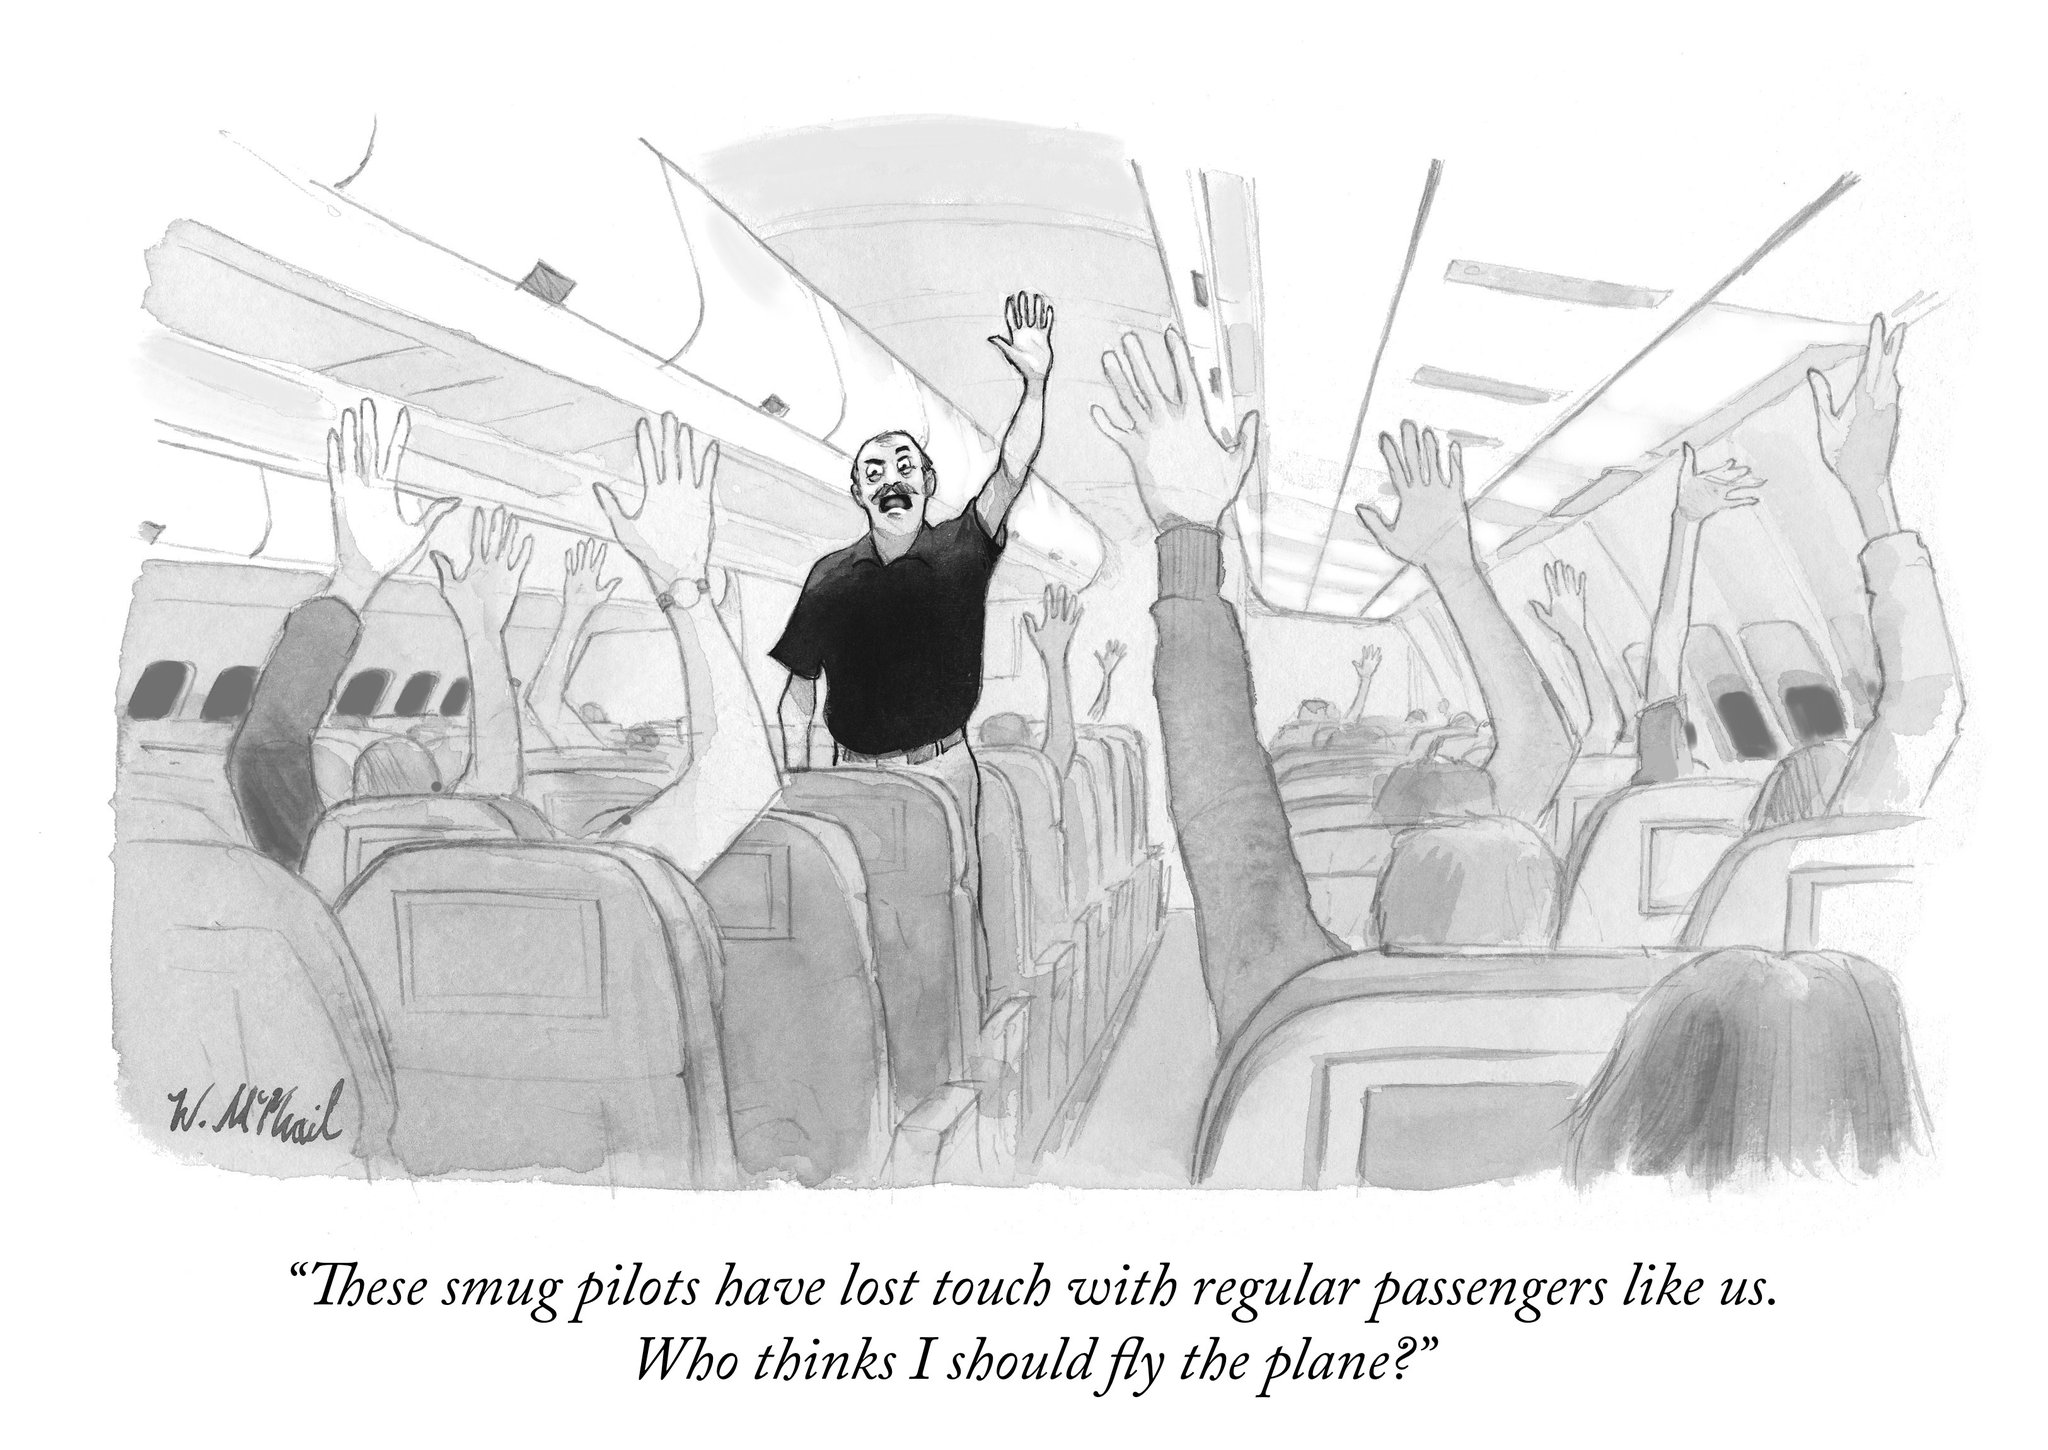 New Yorker cartoon nails 70% of what's wrong with the world ...